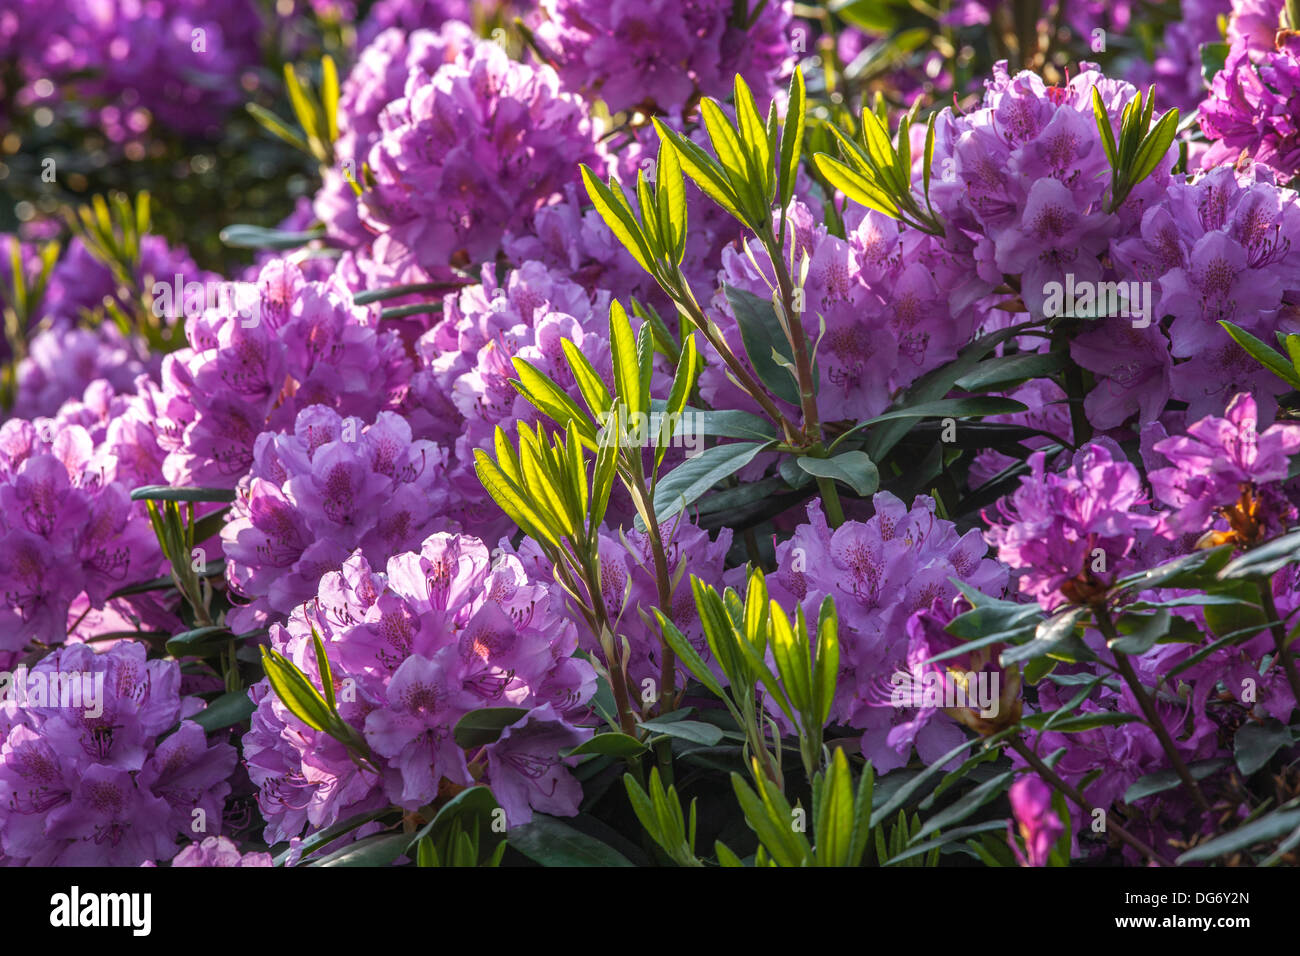 Common rhododendron / pontic rhododendron (Rhododendron ponticum) in flower - Stock Image